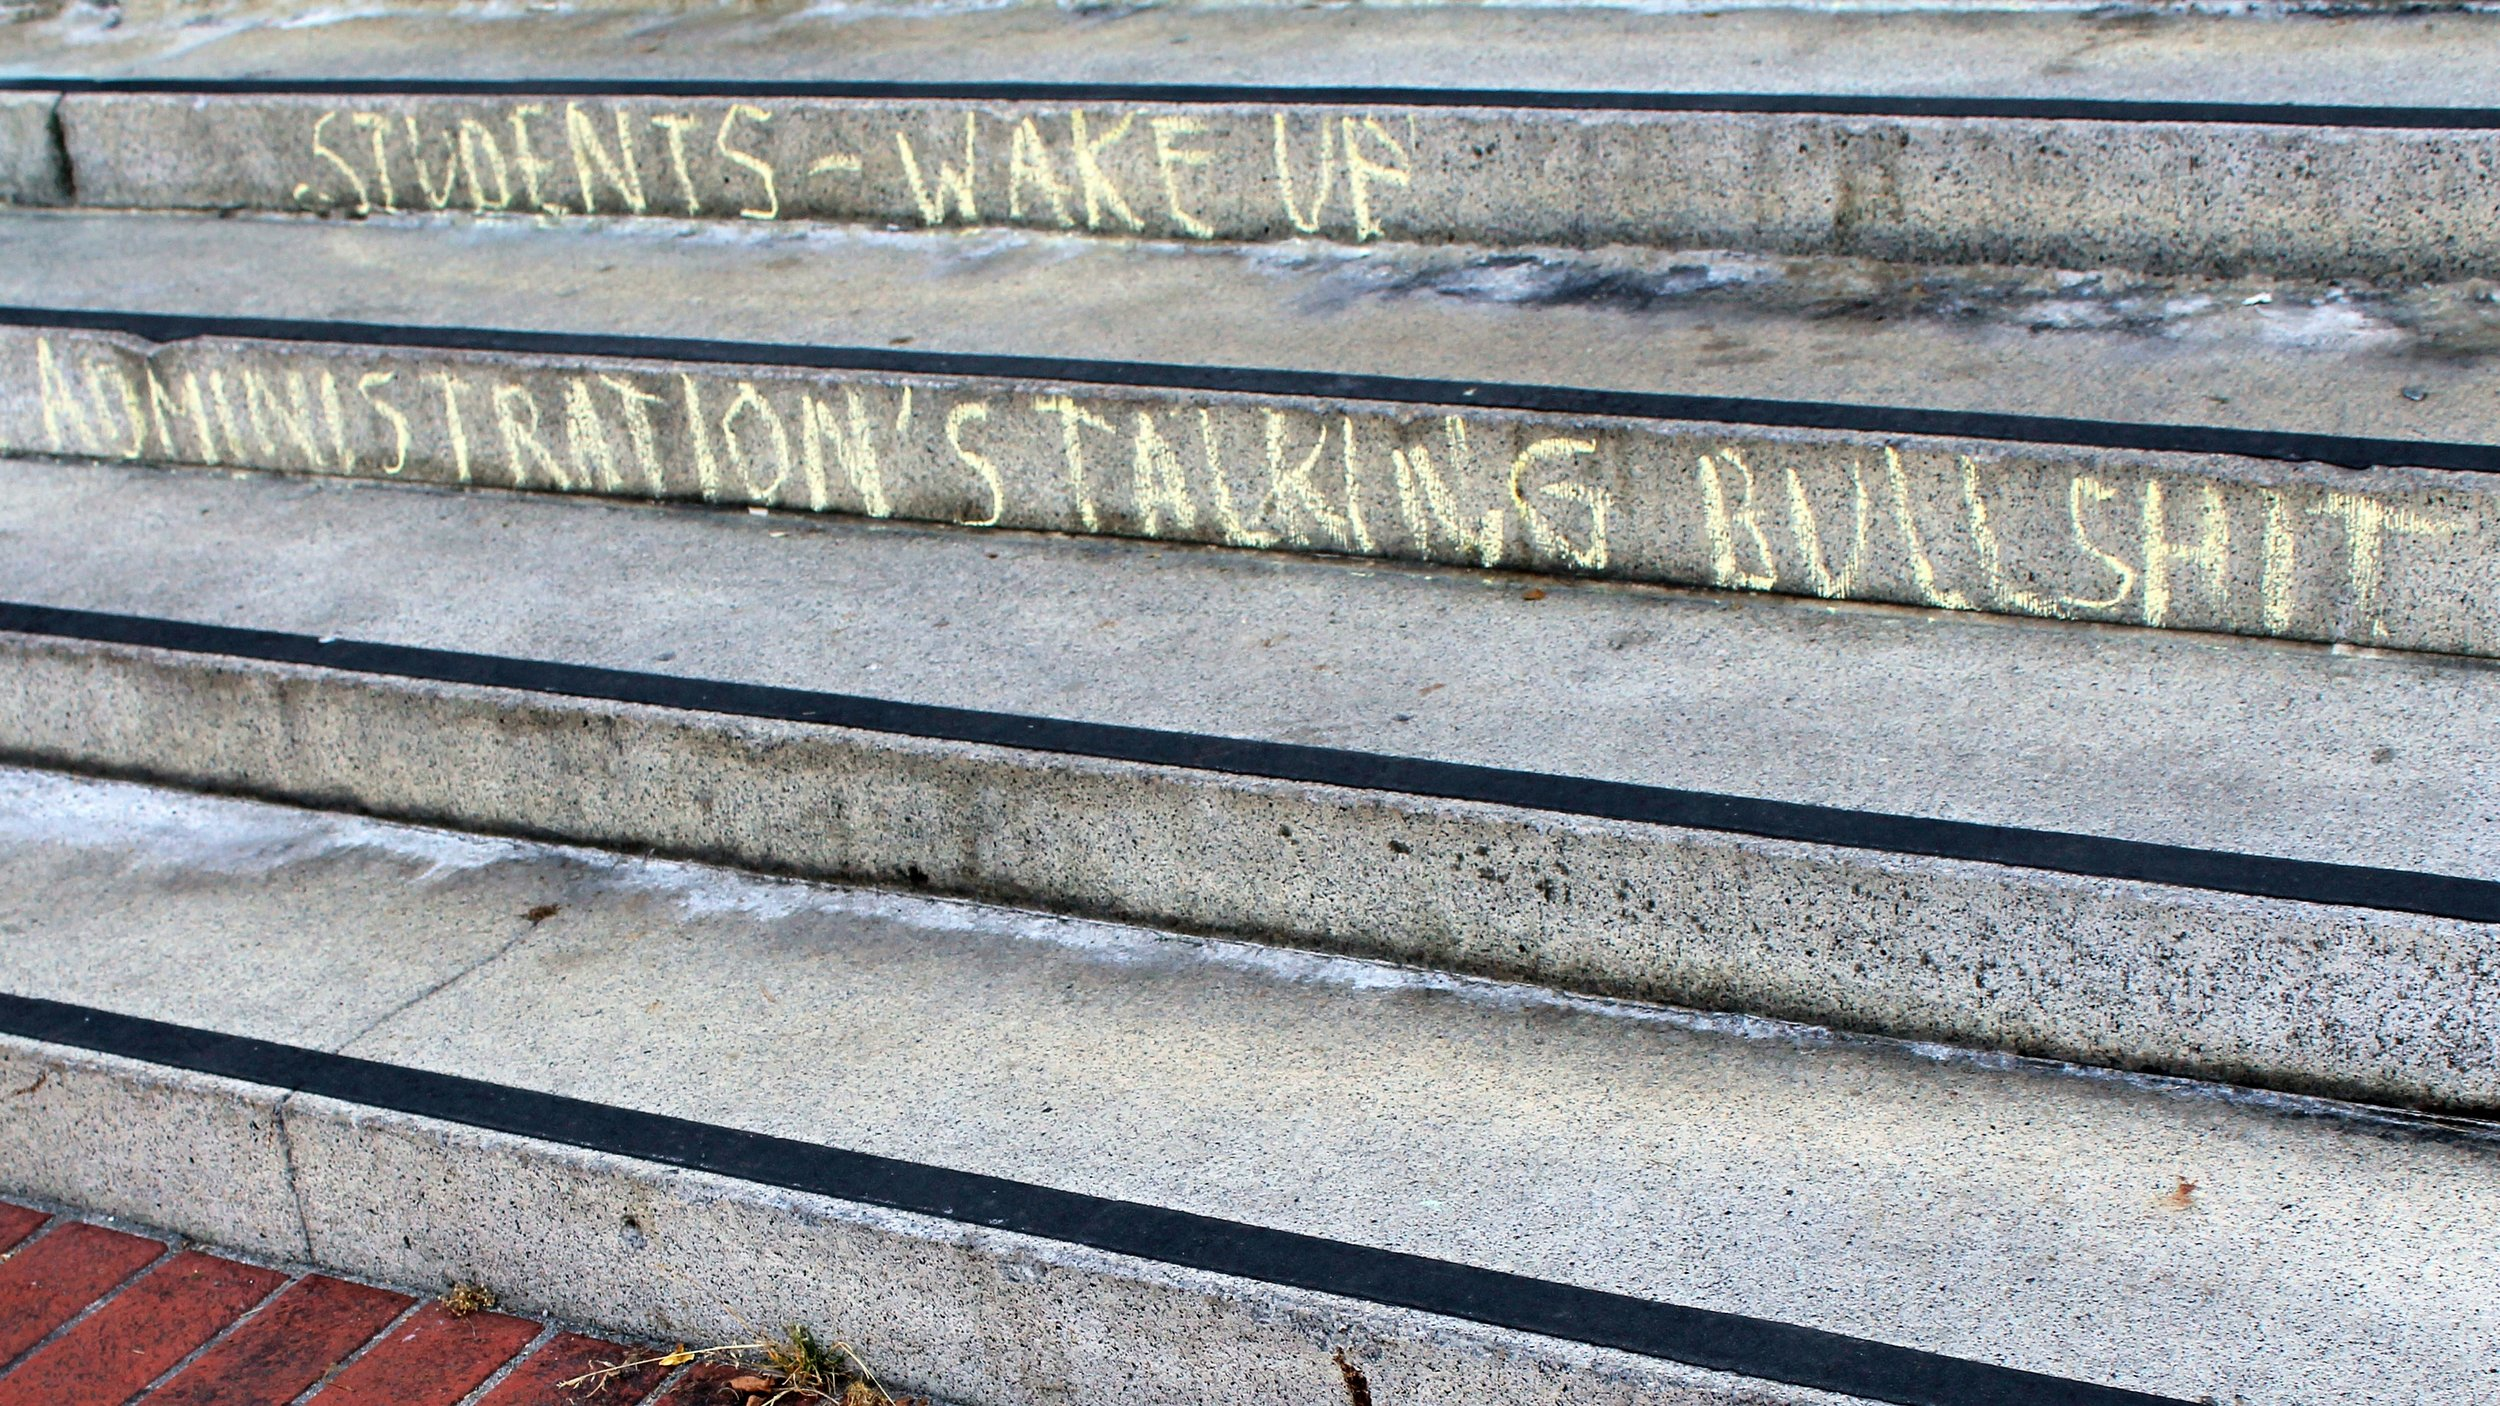 """Photo adapted from  Quinn Dombrowski 's  """"Students - wake up"""""""